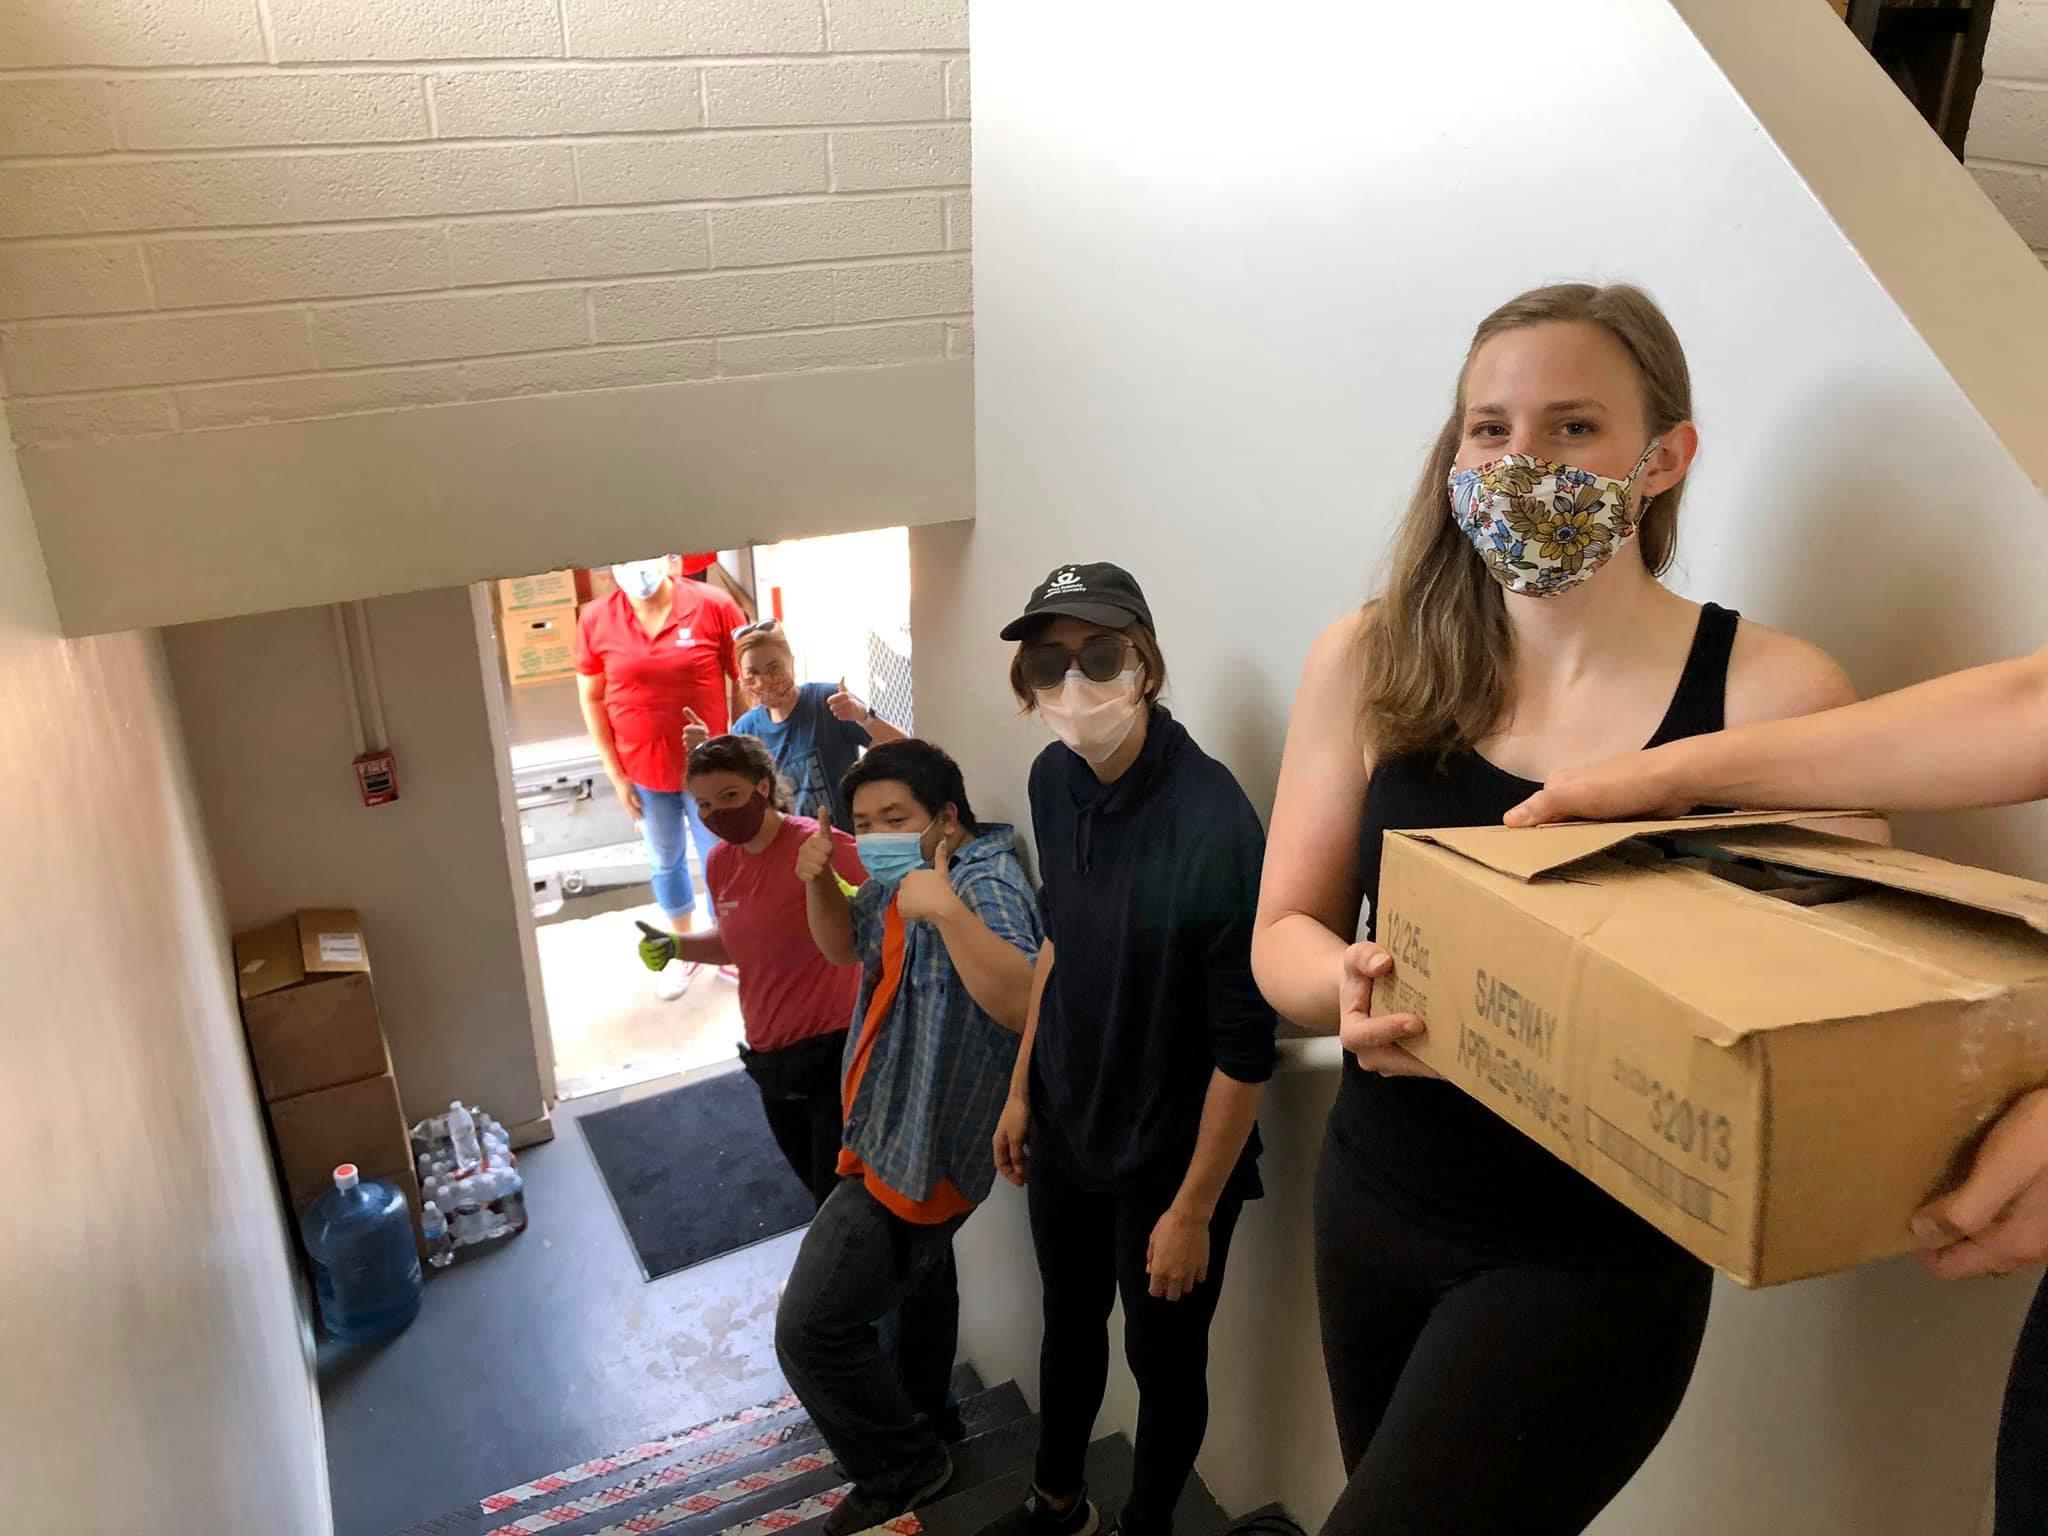 people wearing masks form a line up a flight of stairs as they pass items for delivery up.